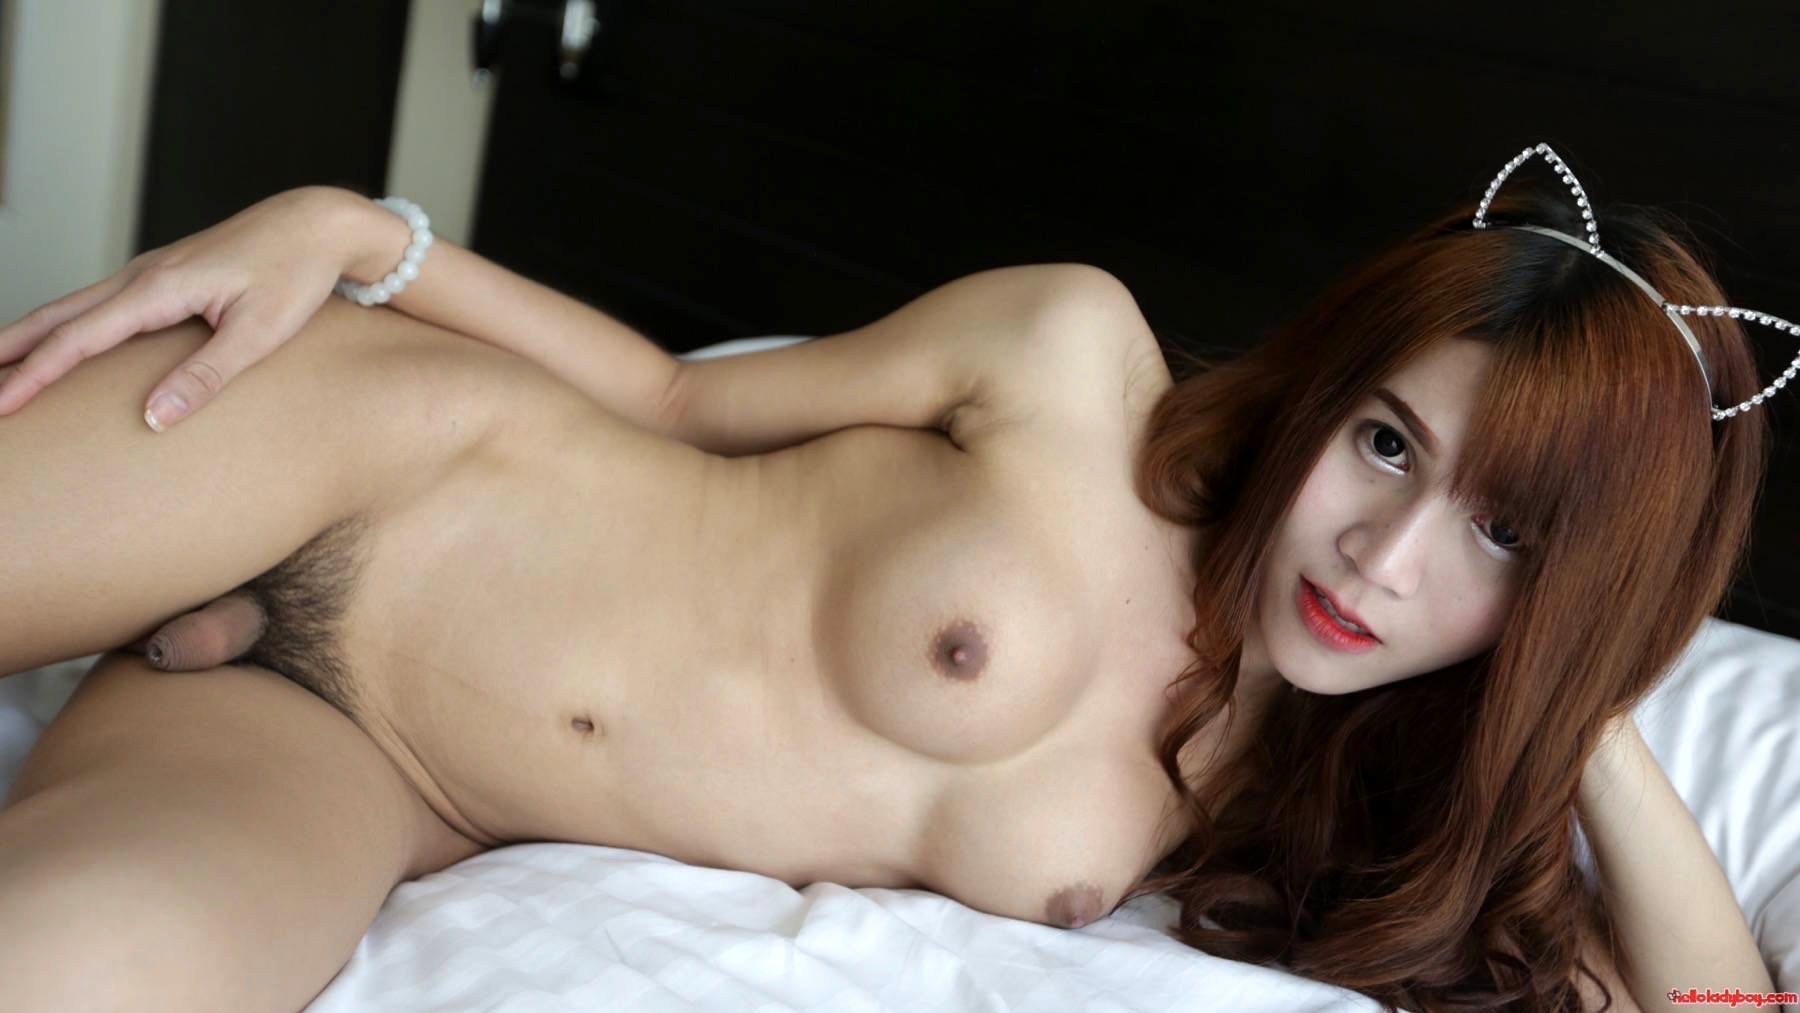 18 Year Old Yummy Asian With Long Red Hair And Busty T-Girl Strips